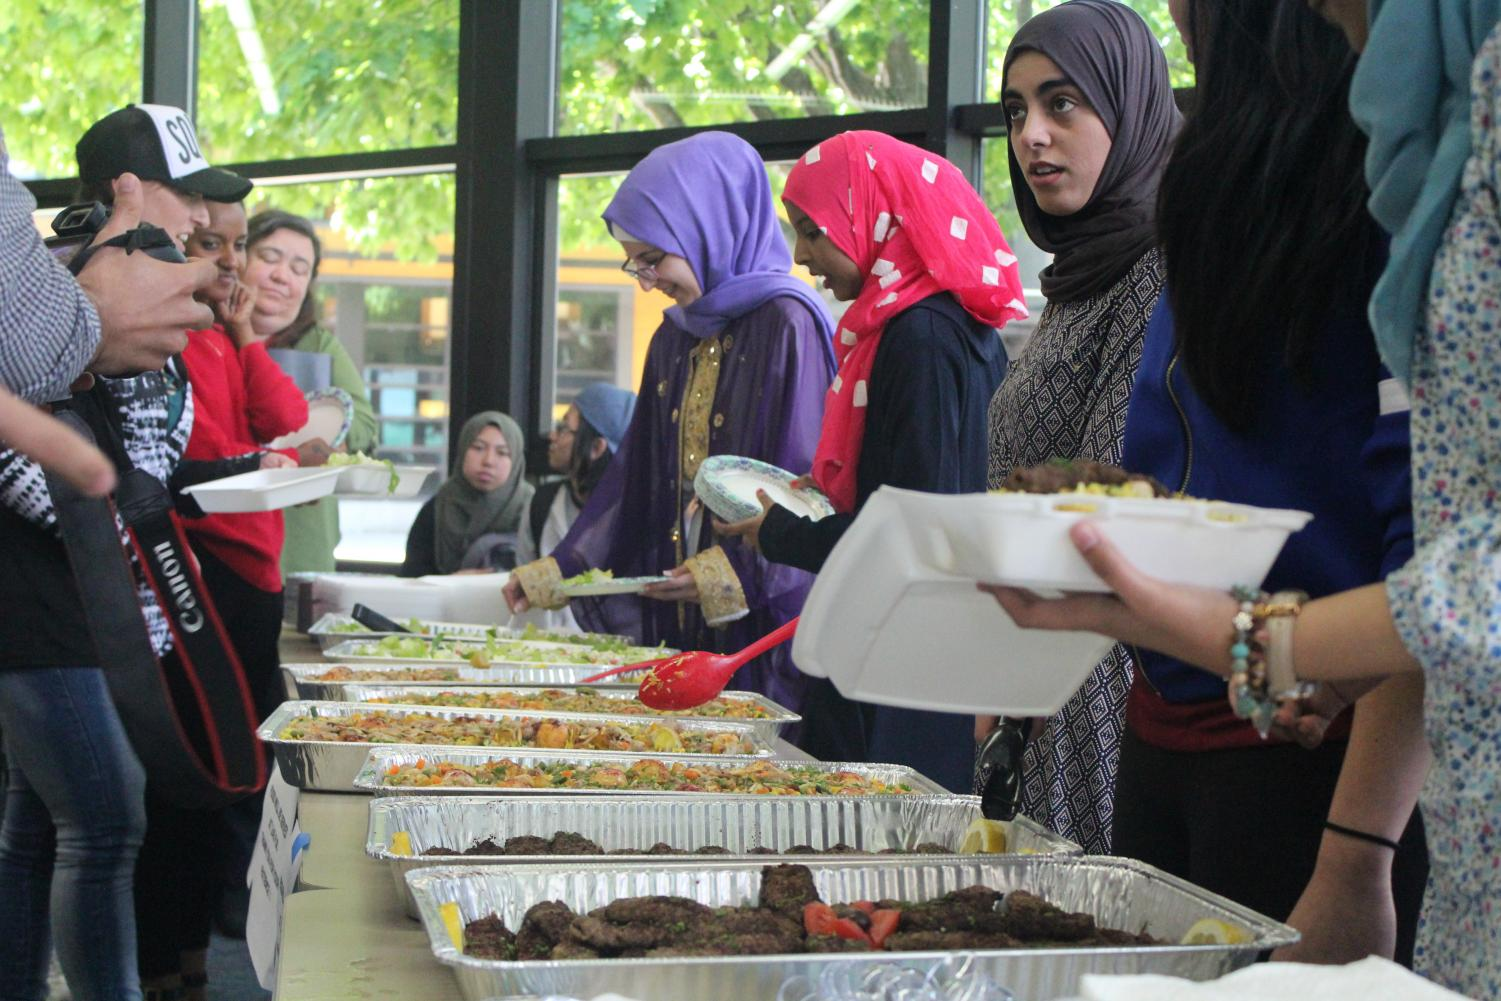 Students and event attendees gather around a table to partake in the Ramadan feast.